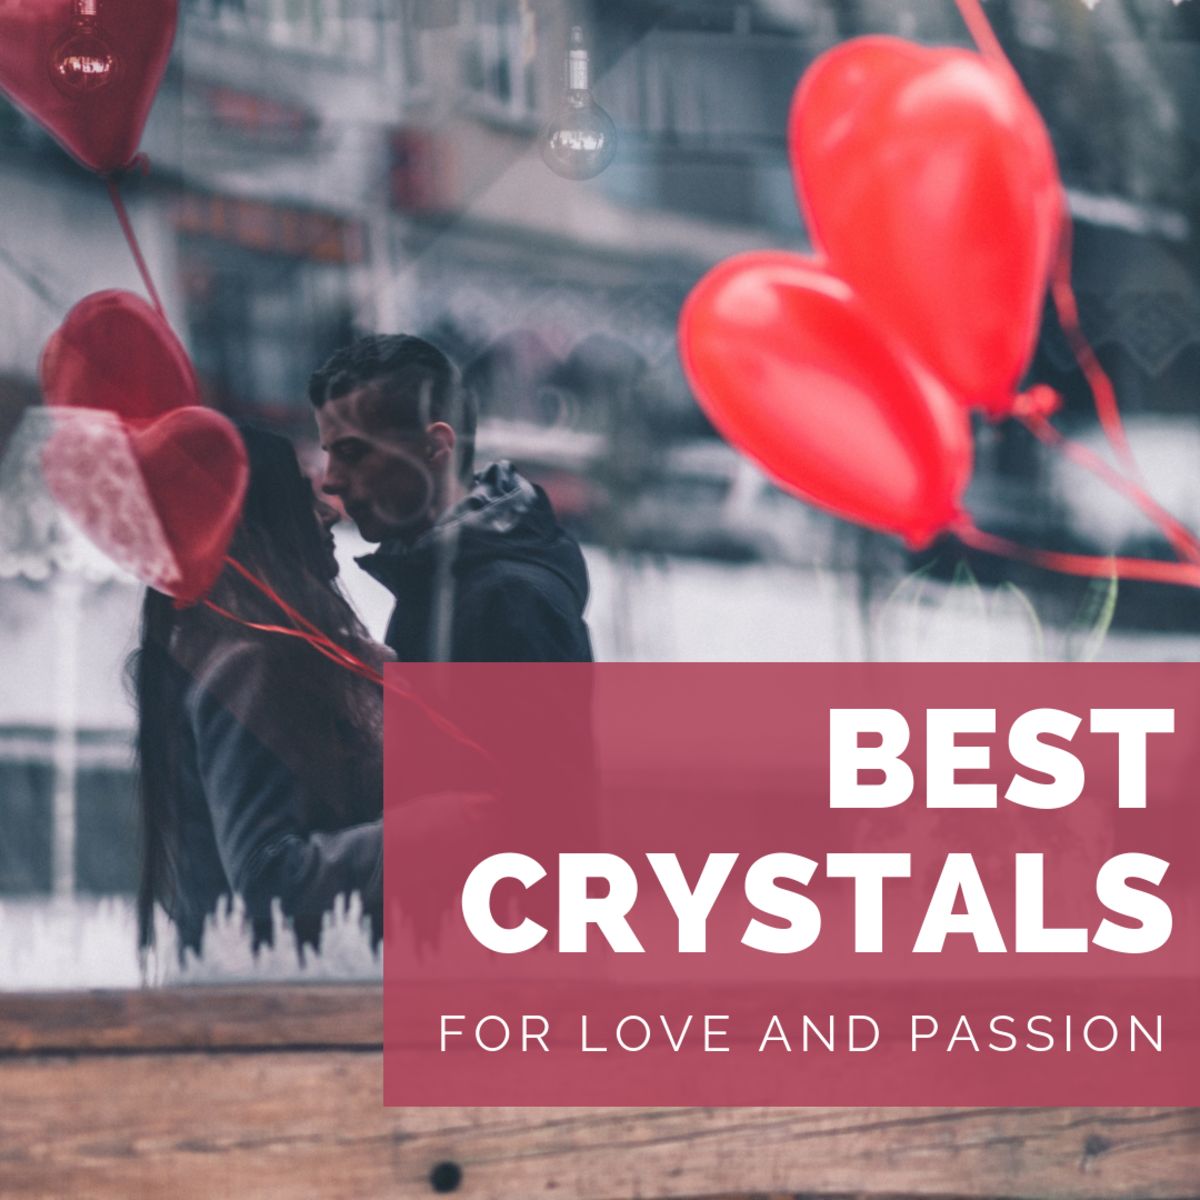 The best crystals for a loving, passionate relationship.